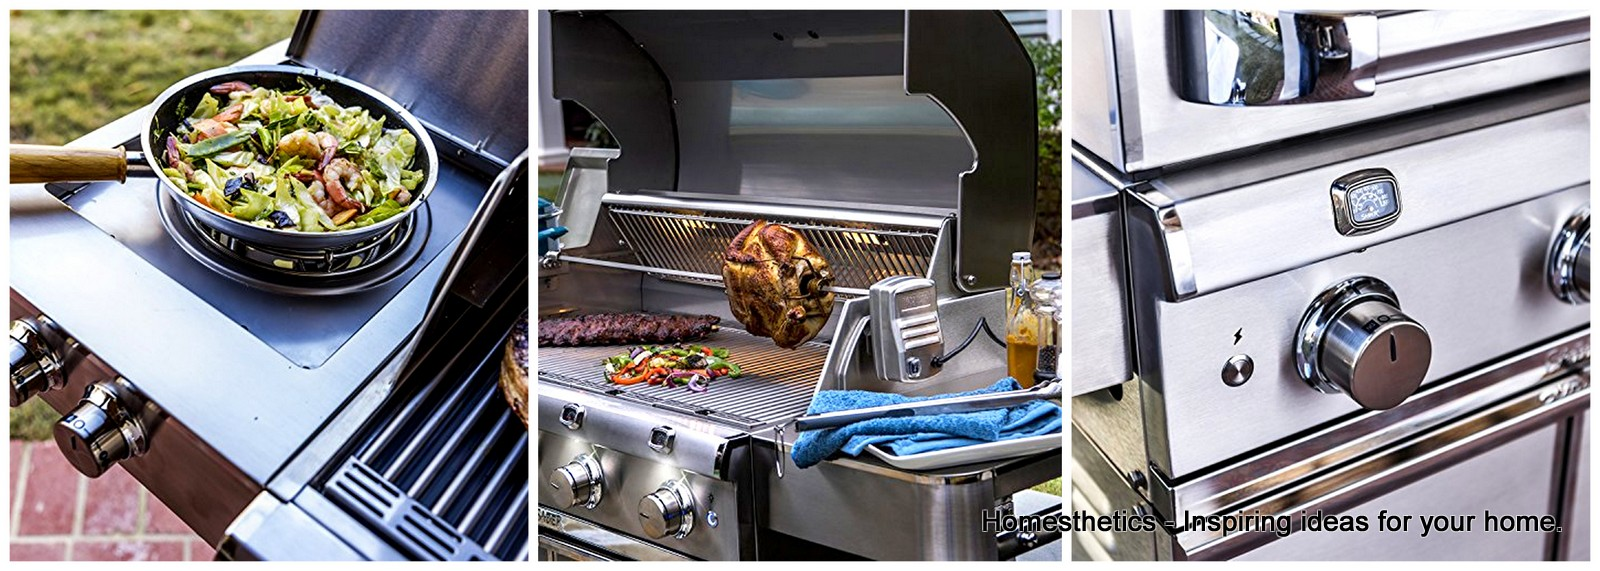 Saber R50SC1417 Gas Grill Review